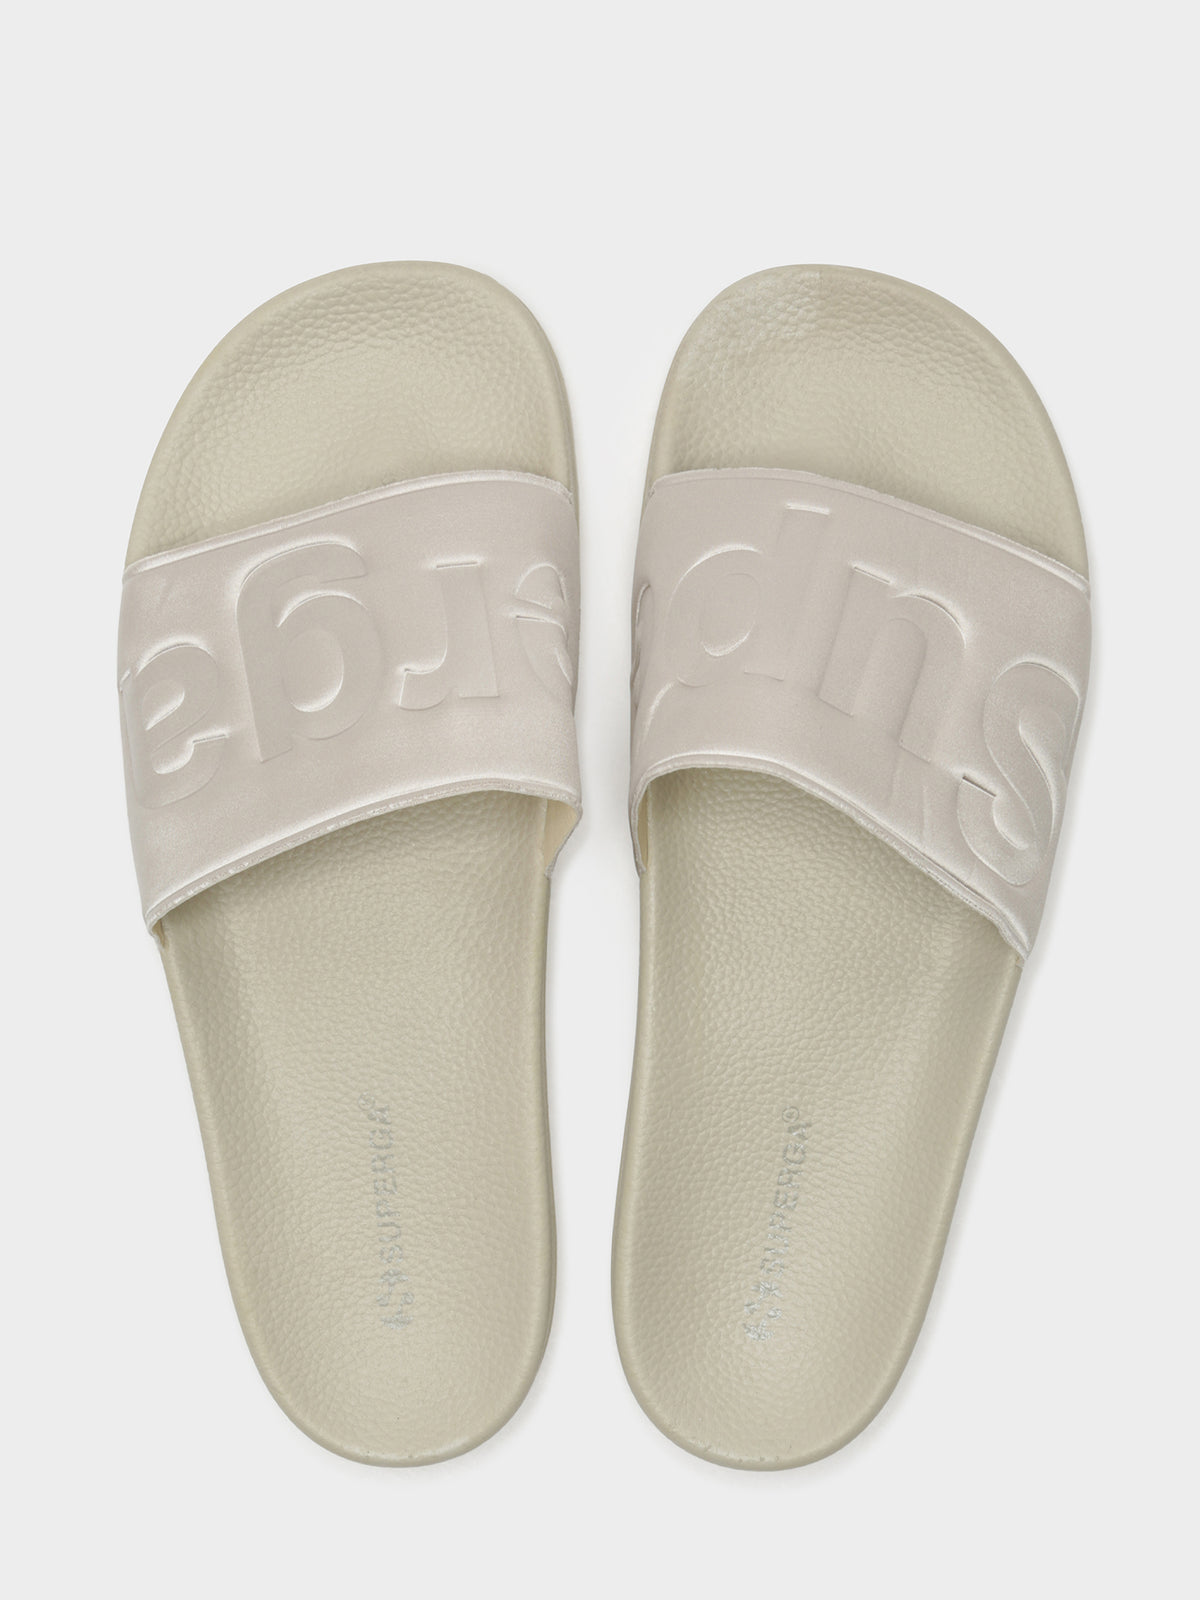 Womens 1908 Satin Slides in Beige